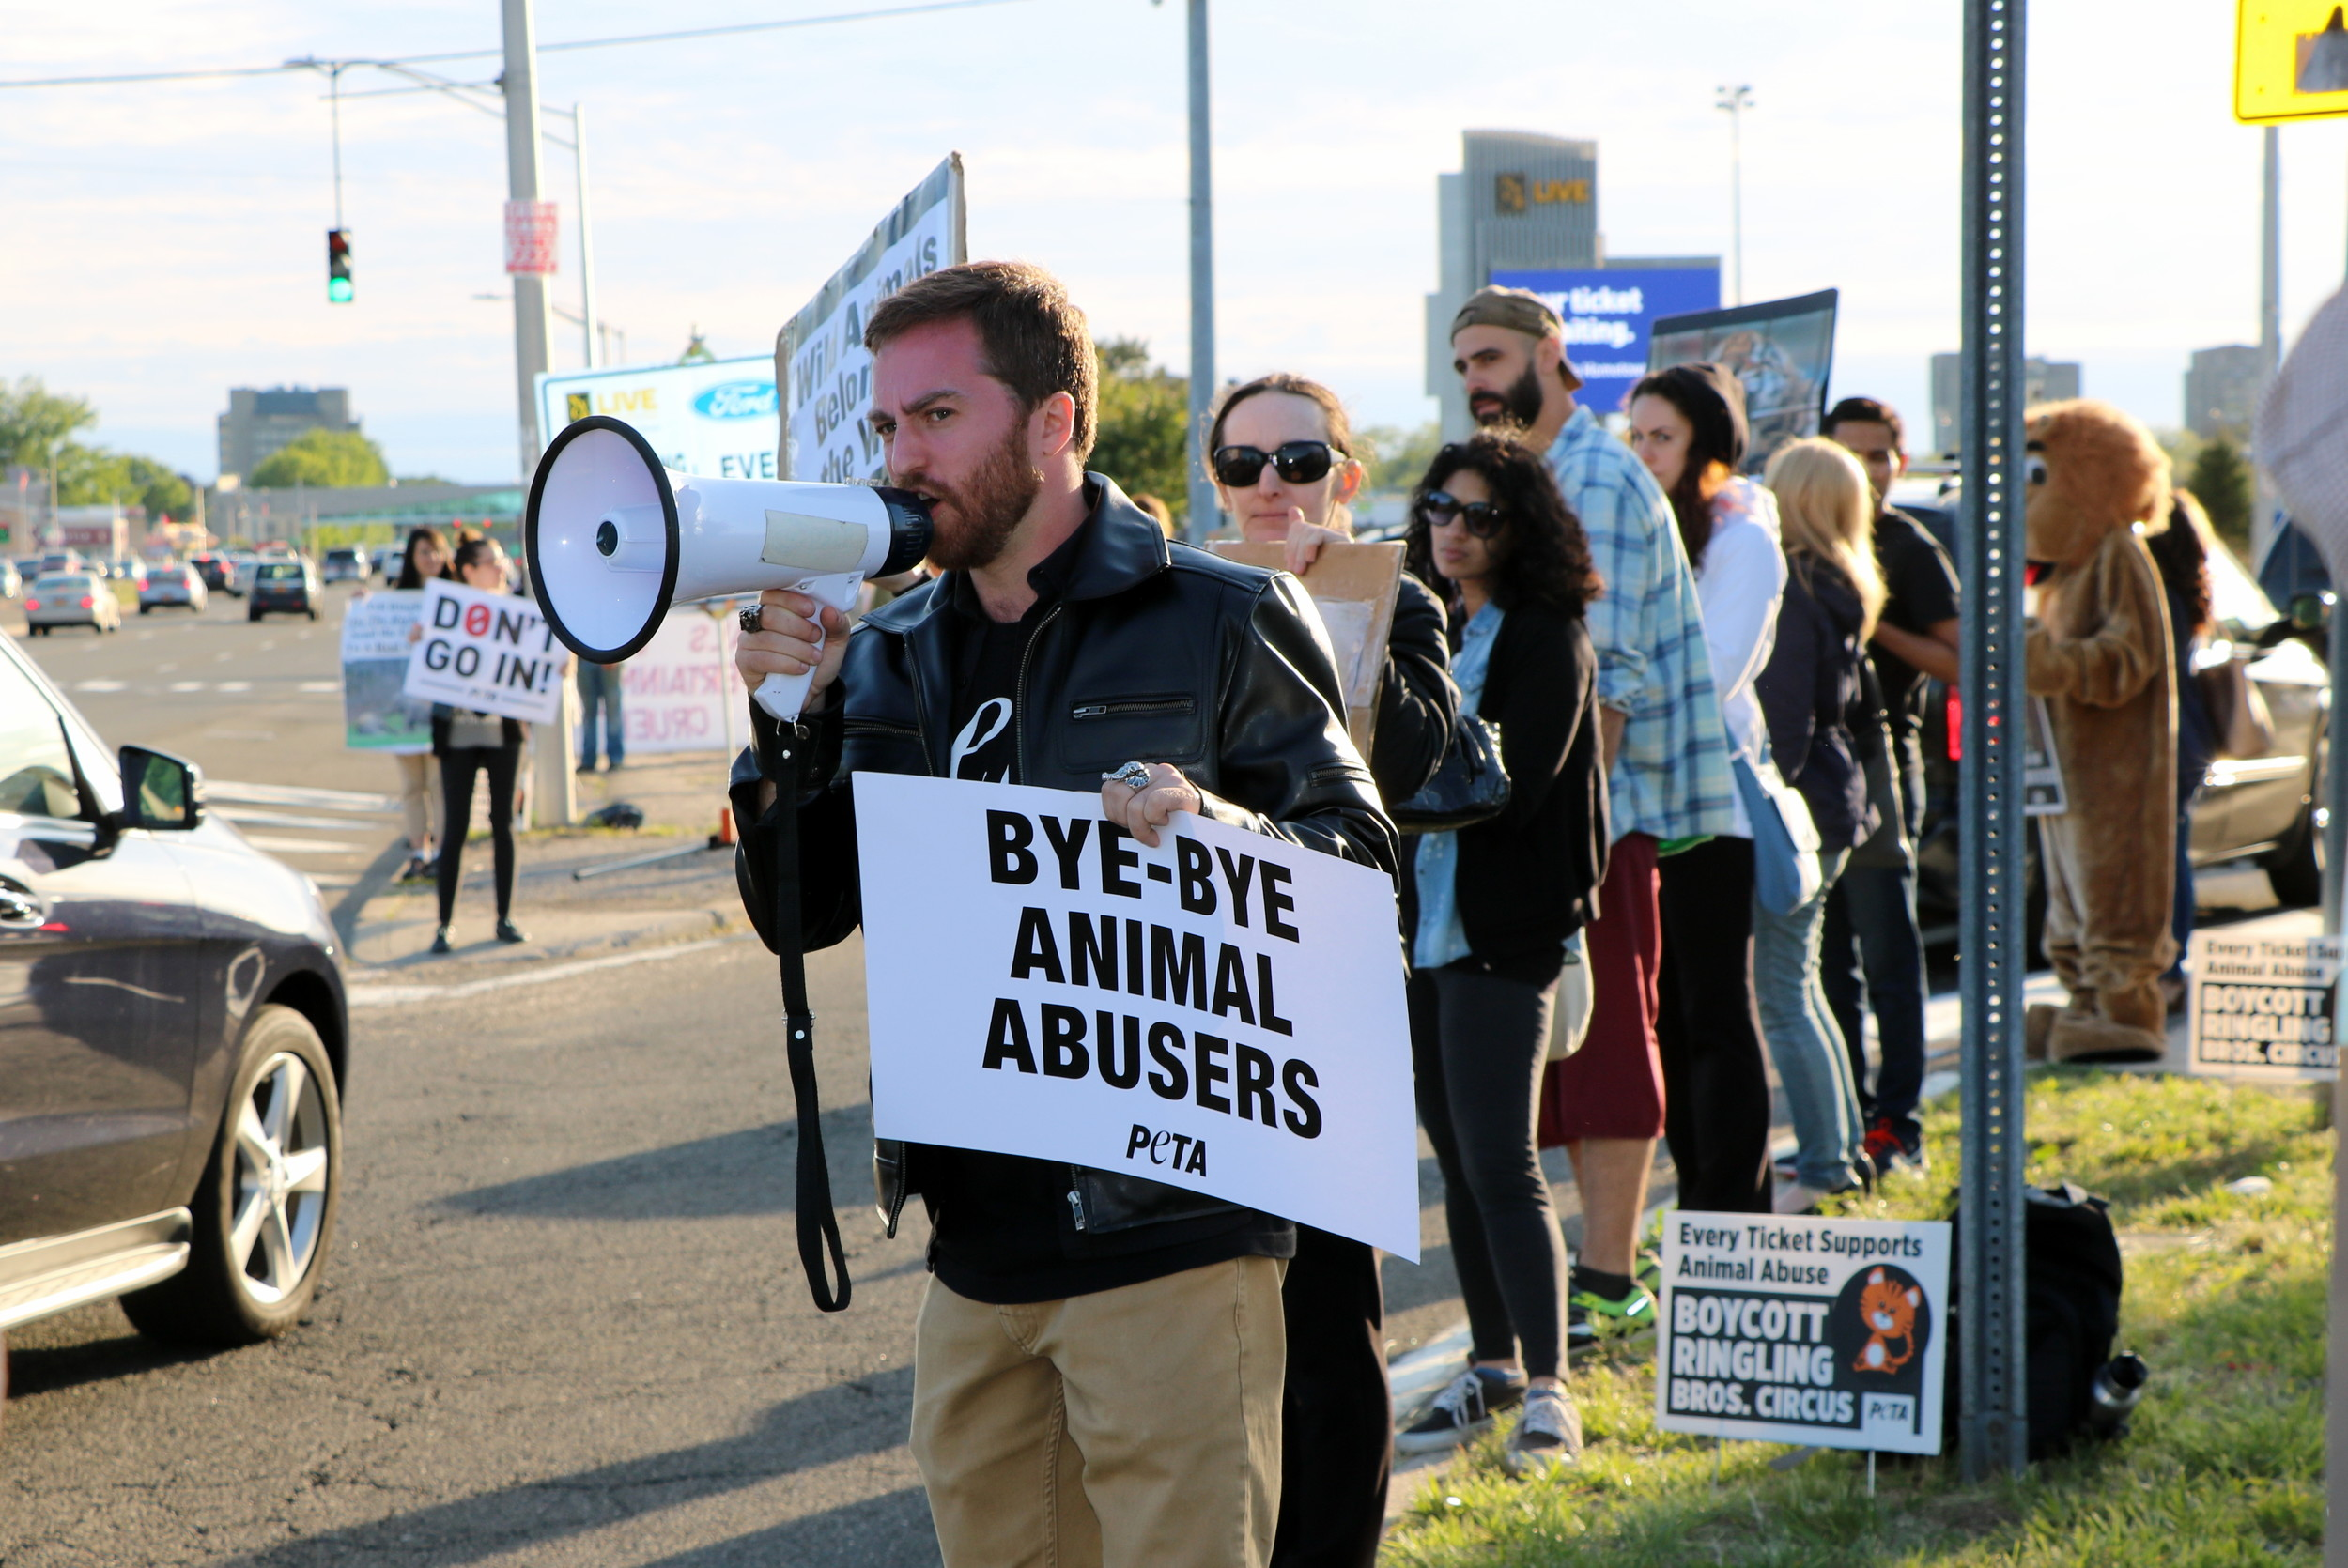 Malvernite and animal rights activist John Di Leonardo protested outside Nassau Coliseum on Hempstead Turnpike during Ringling Bros.' last performance.